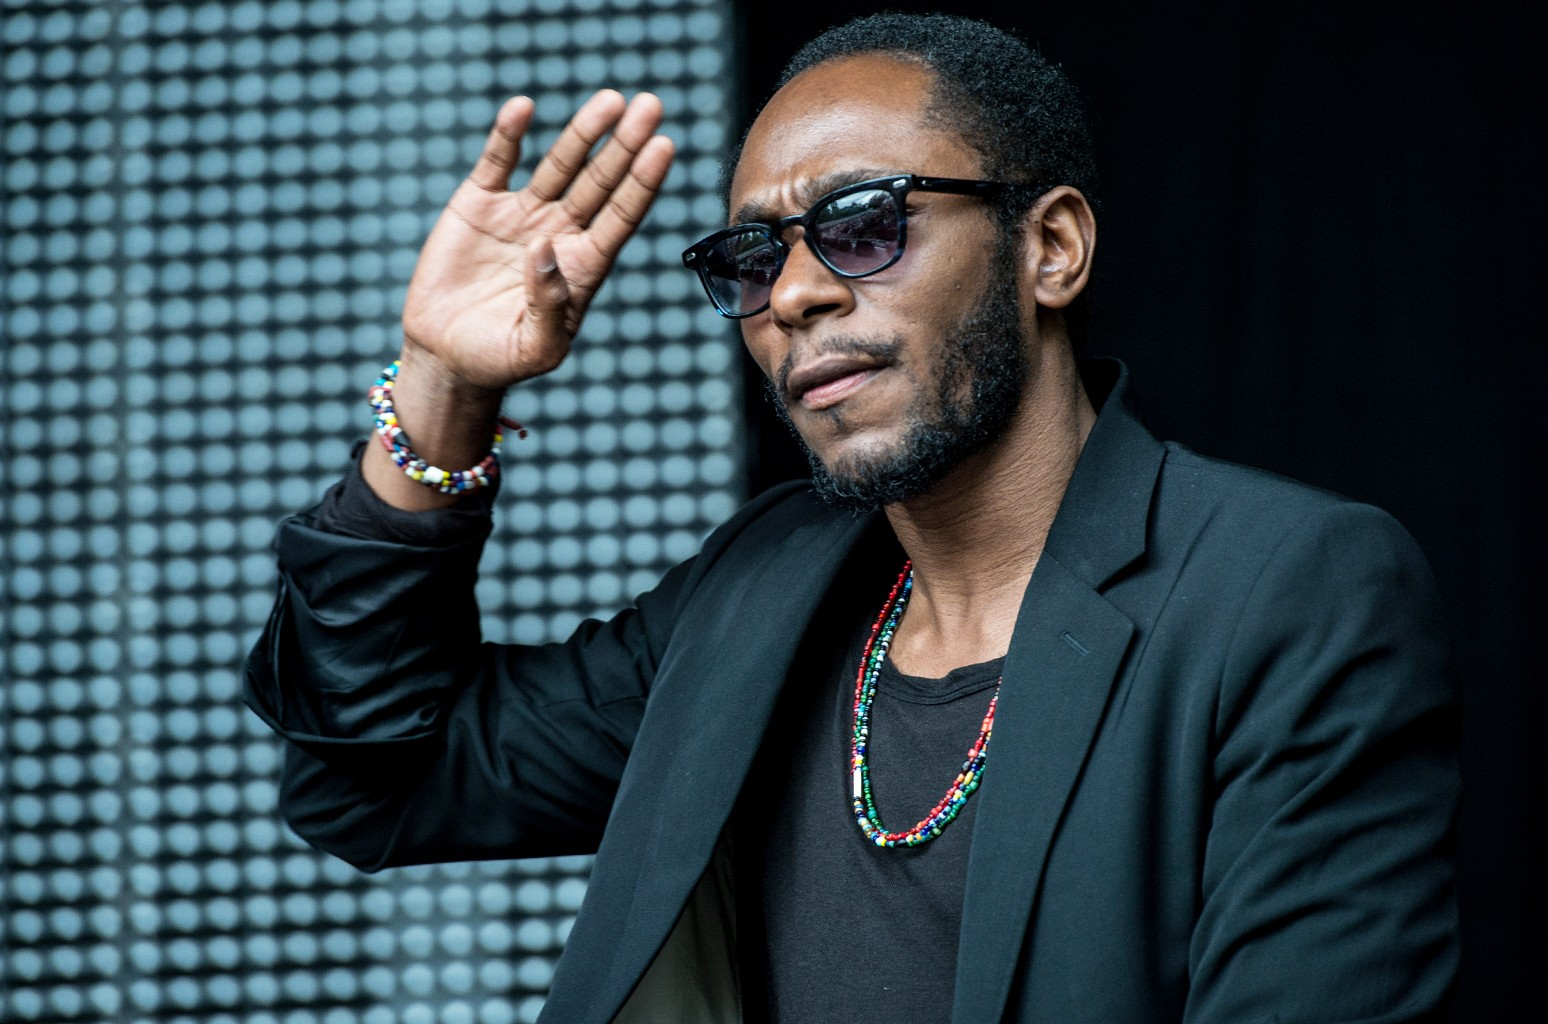 Mos Def Performs onstage during a Black Star set on day 1 of Wireless Festival 2015 at Finsbury Park on June 28, 2015 in London.